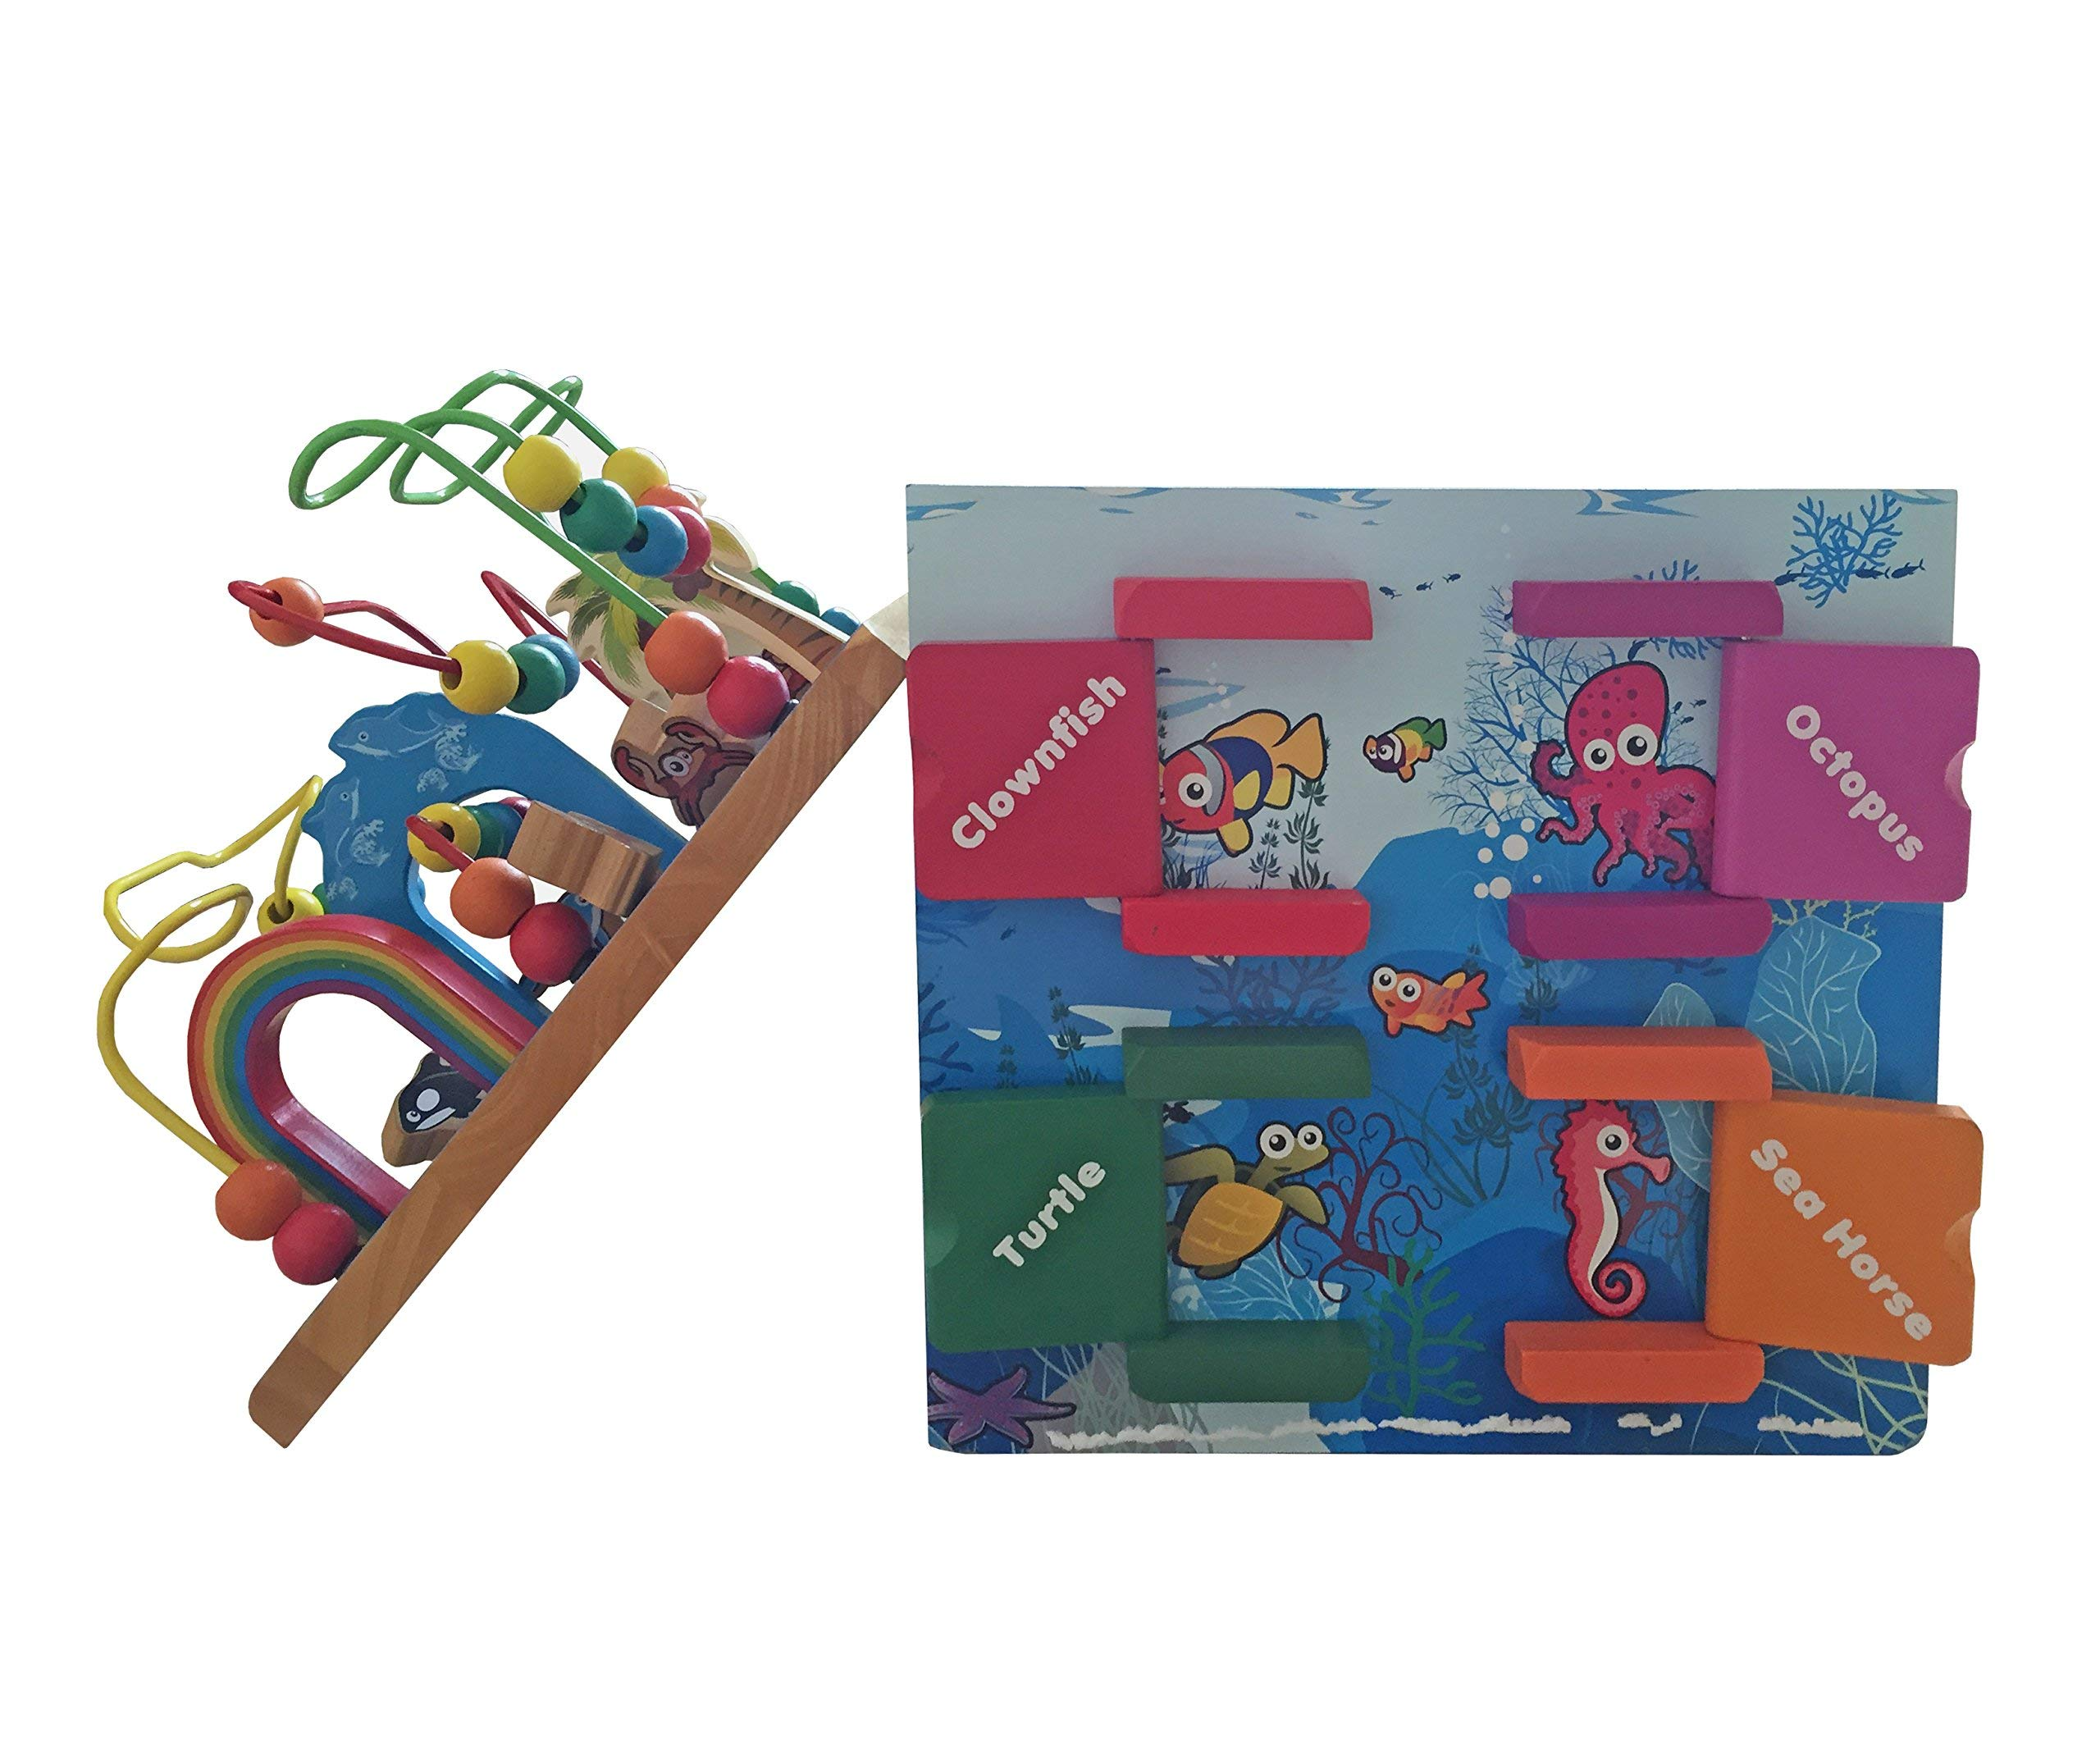 Under The Sea Adventures, Deluxe Activity Wooden Maze Cube - Perfect for Kids Play, Musical Activity, and Toddlers Early Developmental Skills by Pidoko Kids (Image #8)